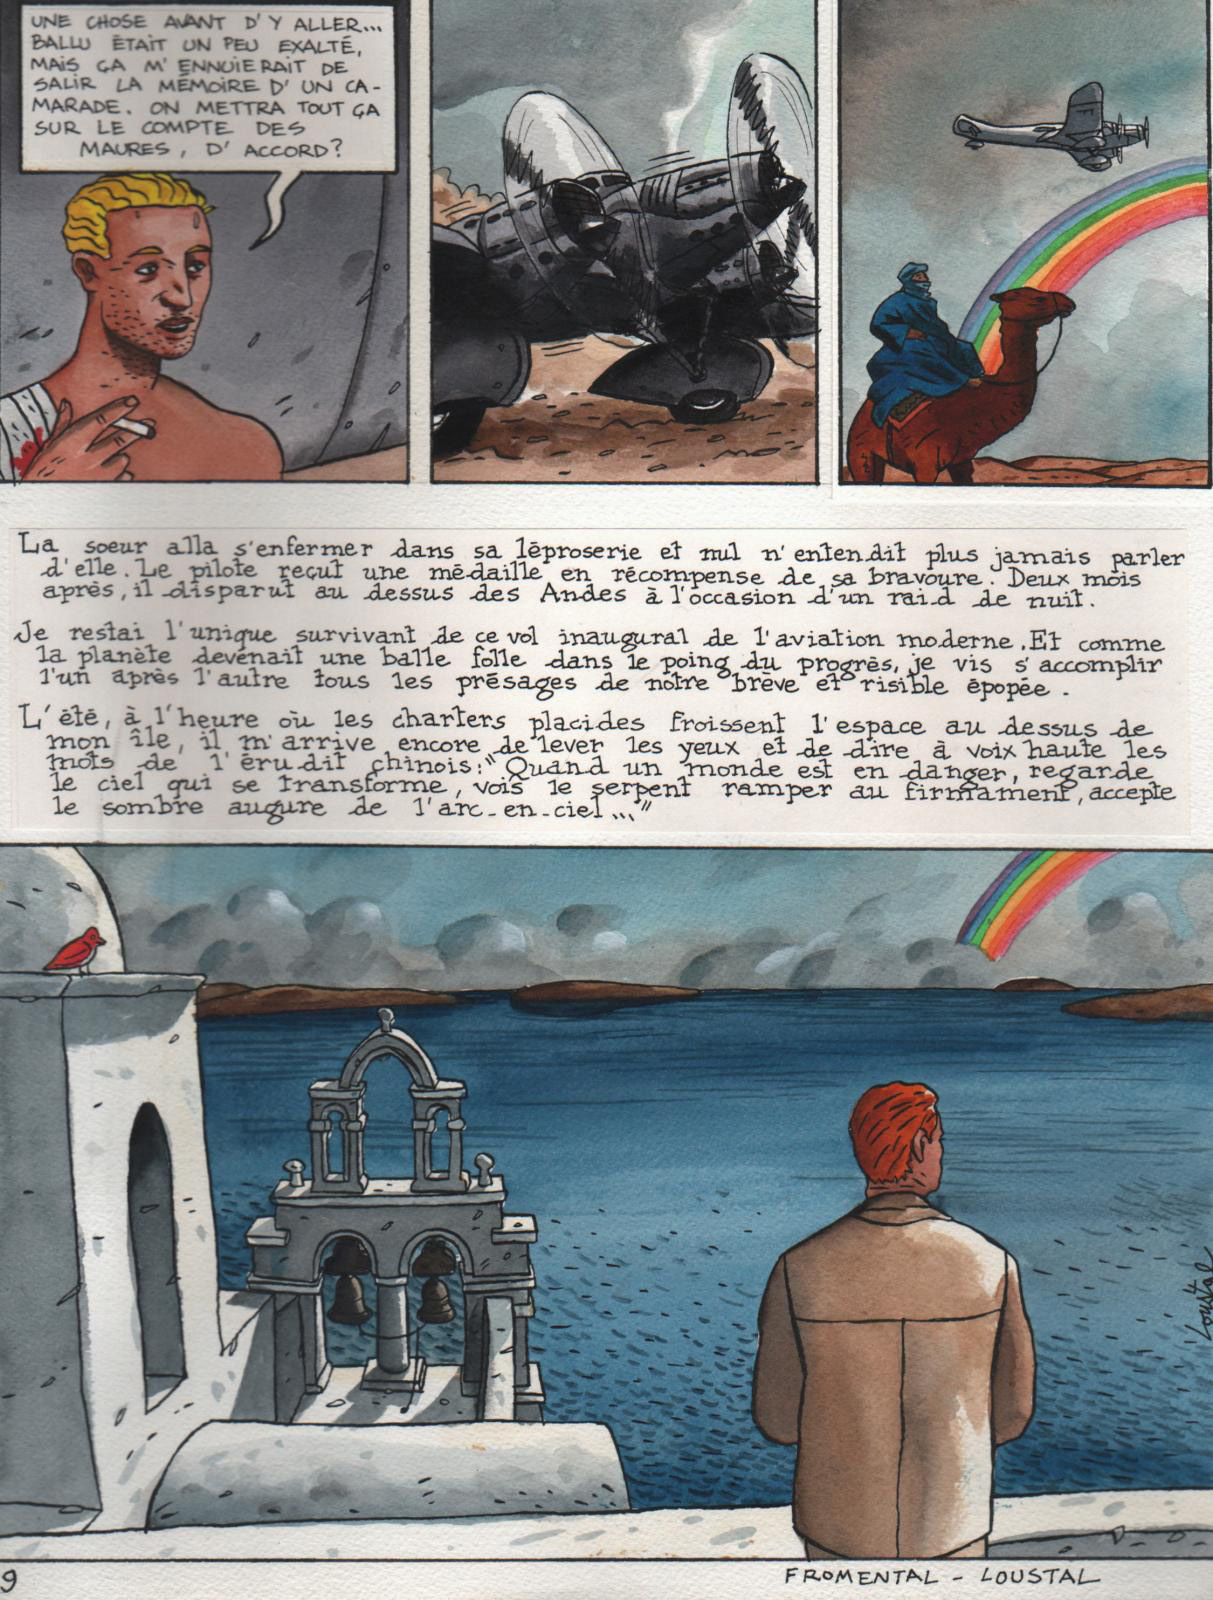 Jacques de Loustal-Fromental, L'Adieu à l'arc-en-ciel (Farewell to the Rainbow), collages and watercolor on cardboard, signed in the lower